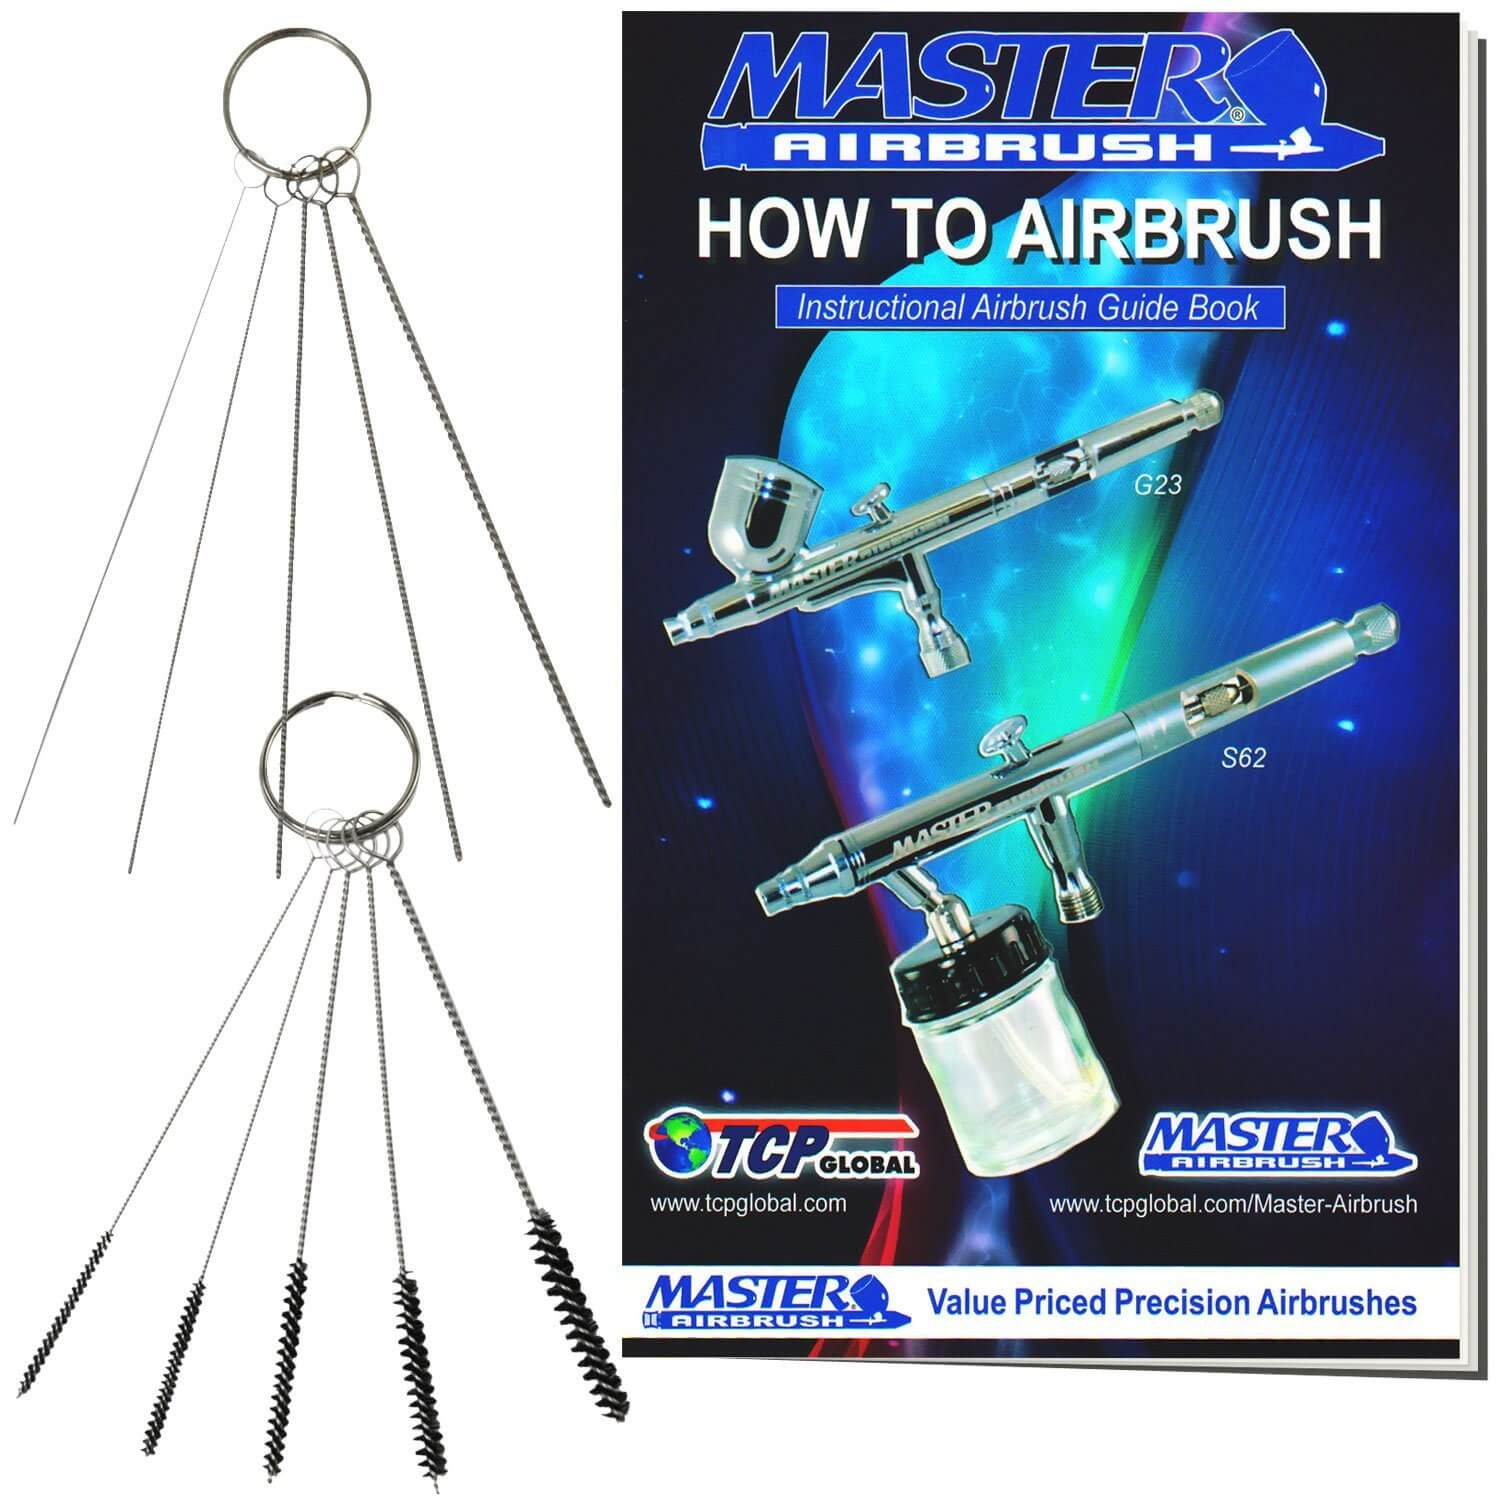 Master Airbrush Brand 11 Piece Kit